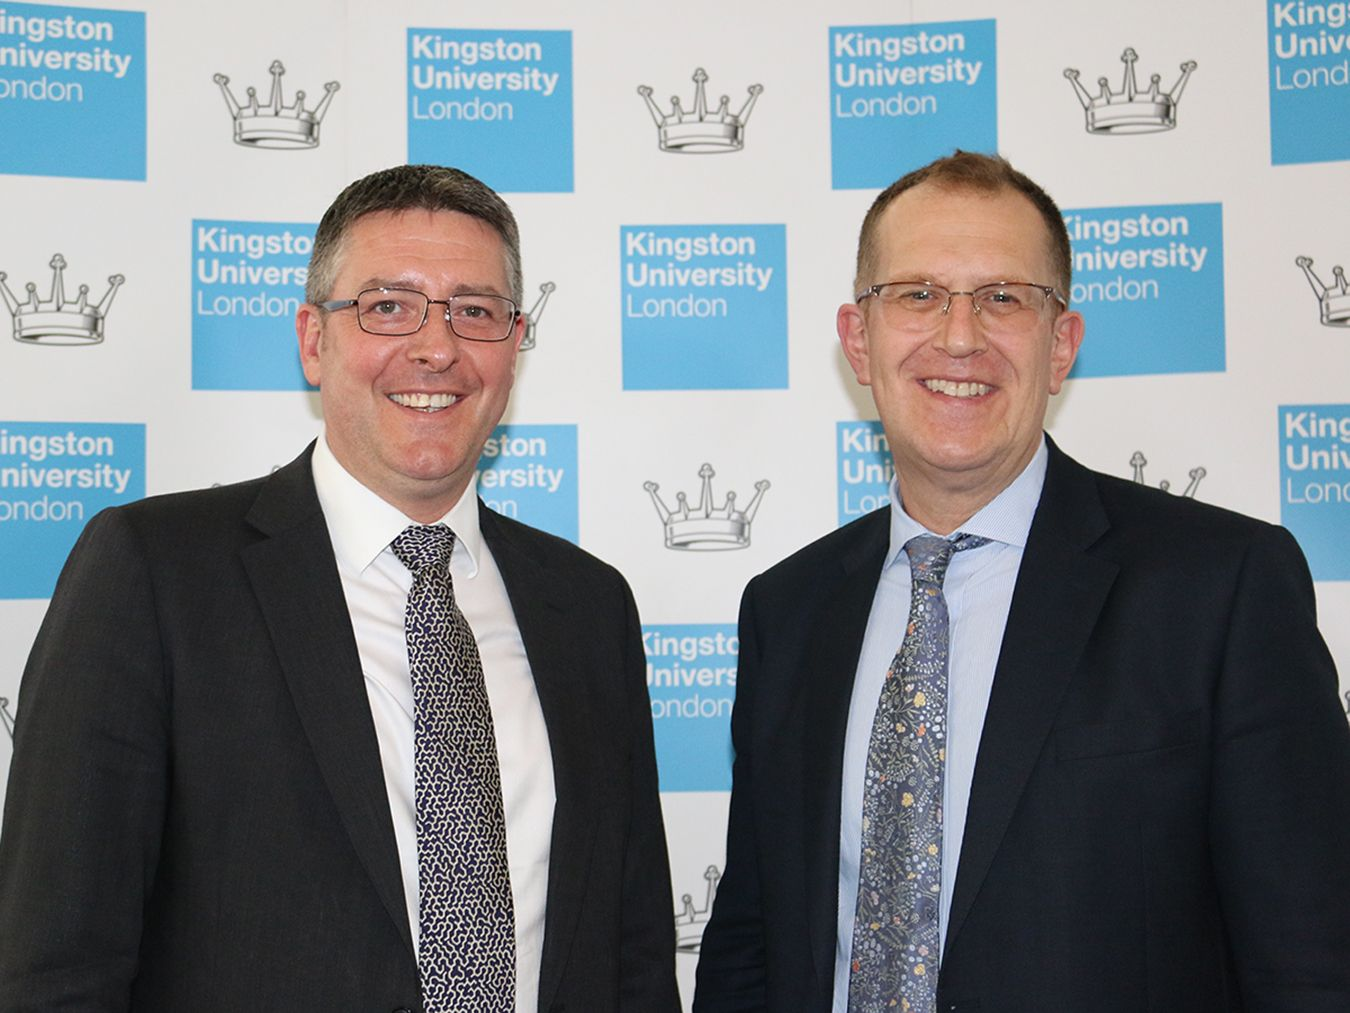 An image of Matt Hutnell of Santander Universities and Acting Vice-Chancellor Professor Steven Spier